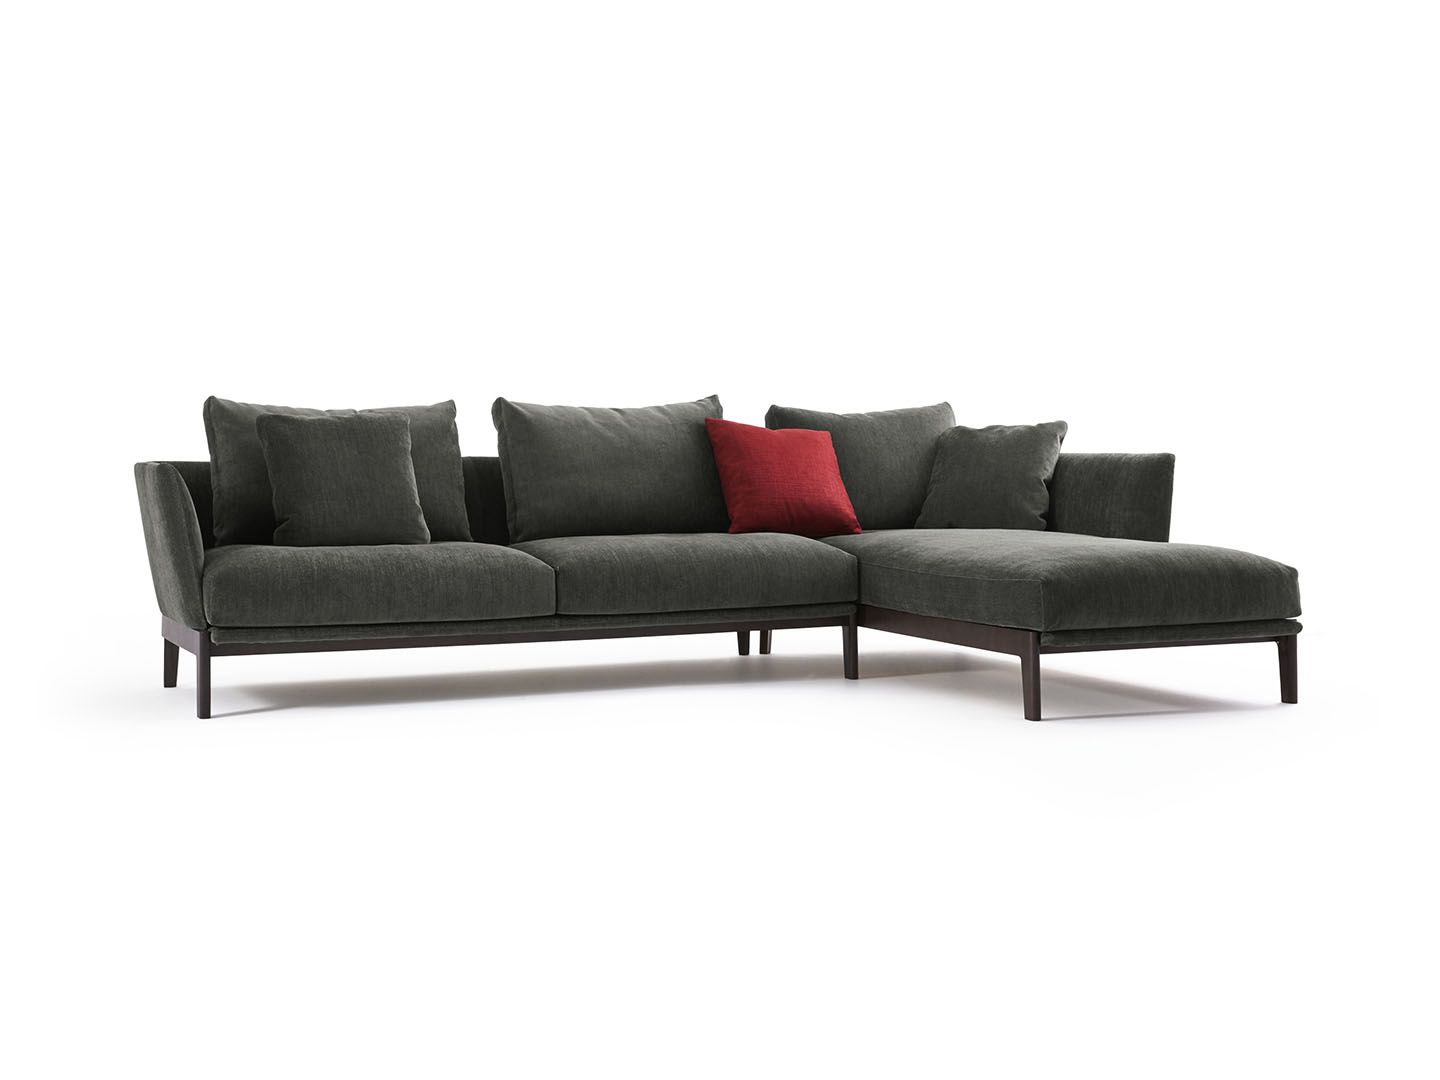 Sessel Sultan Chelsea For The Home Pinterest Wohnzimmer Sofa Möbel And Sessel